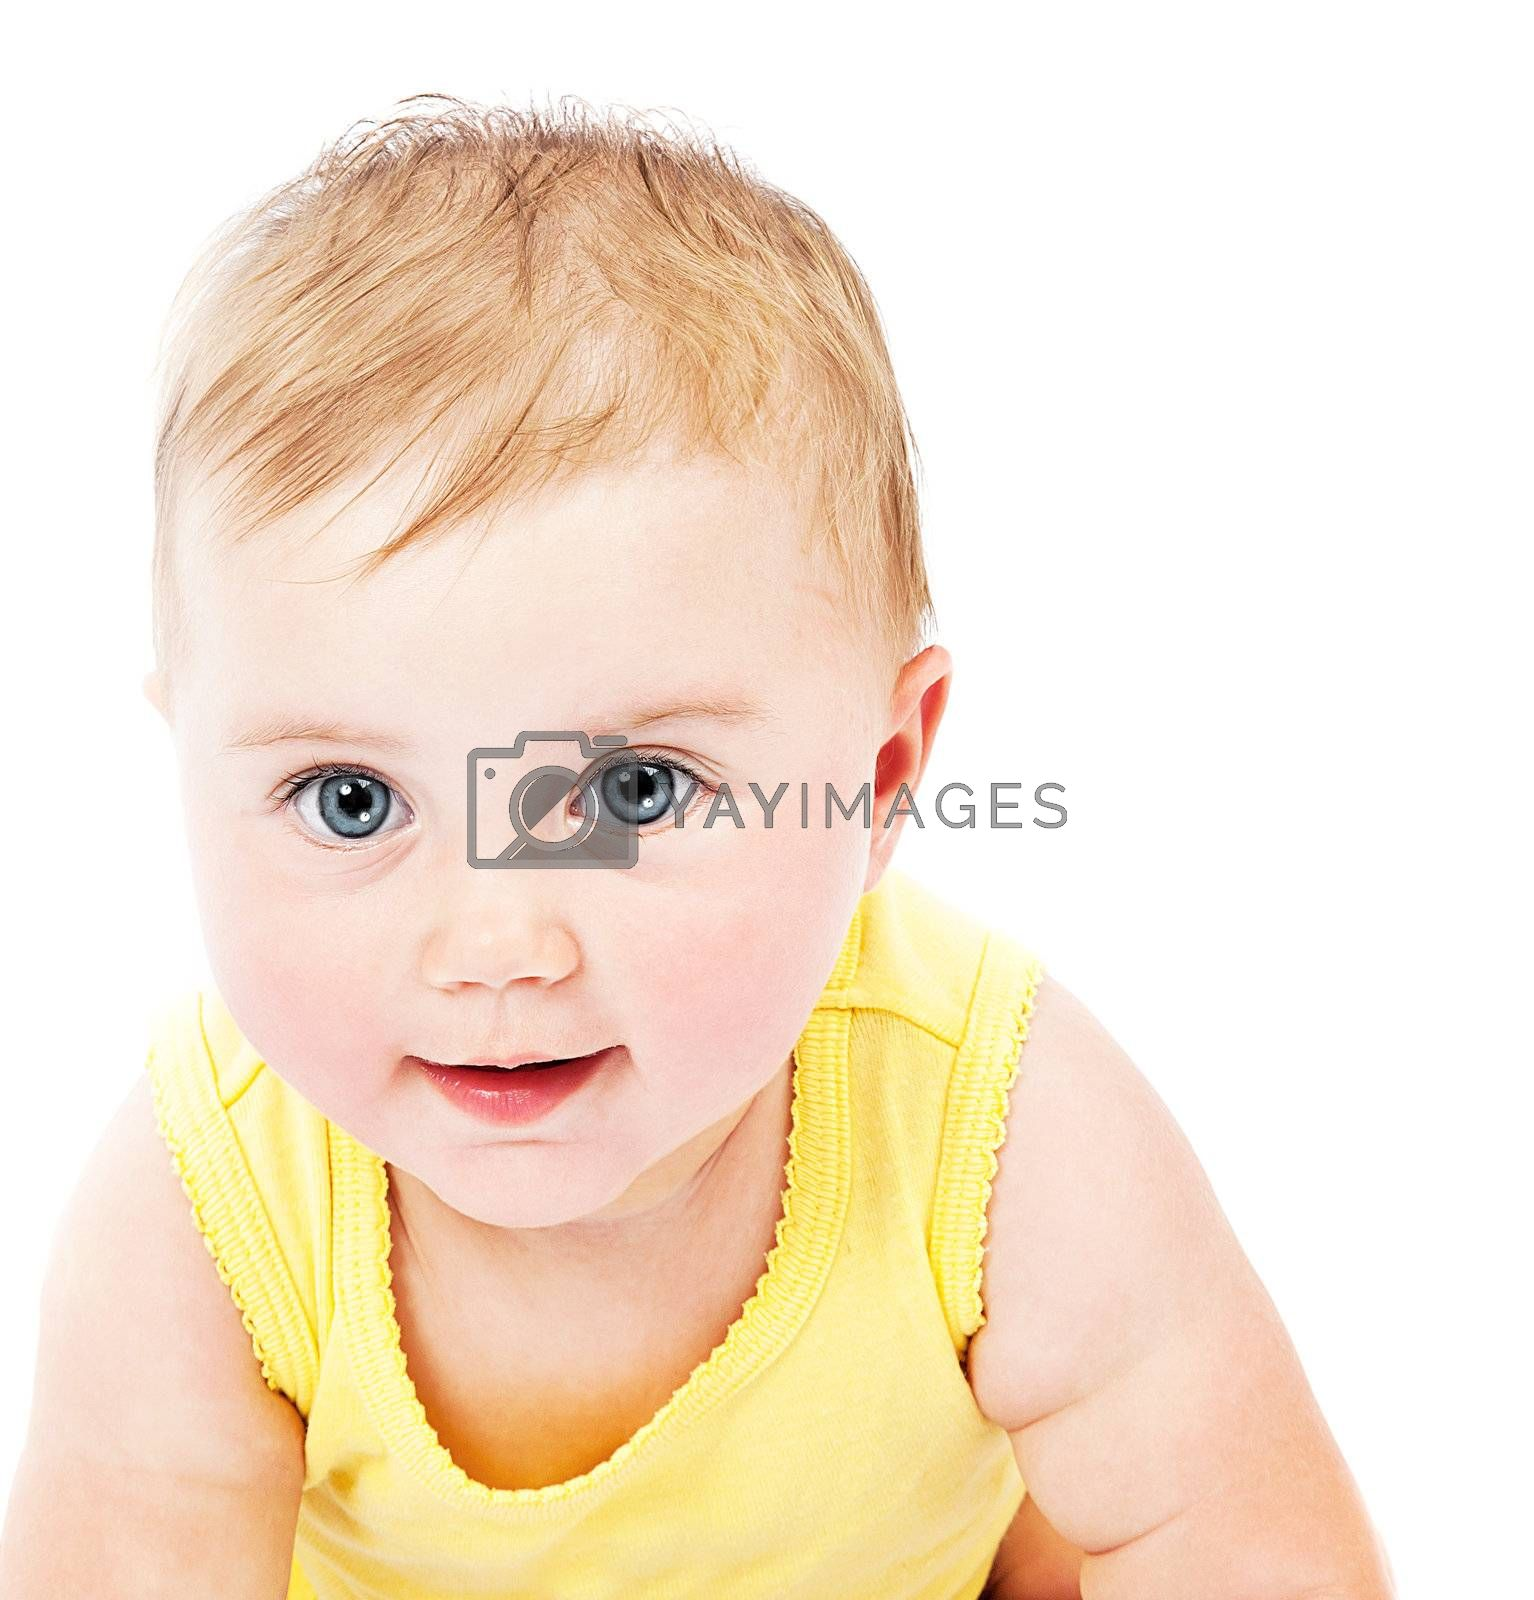 Cute baby face portrait isolated on white background